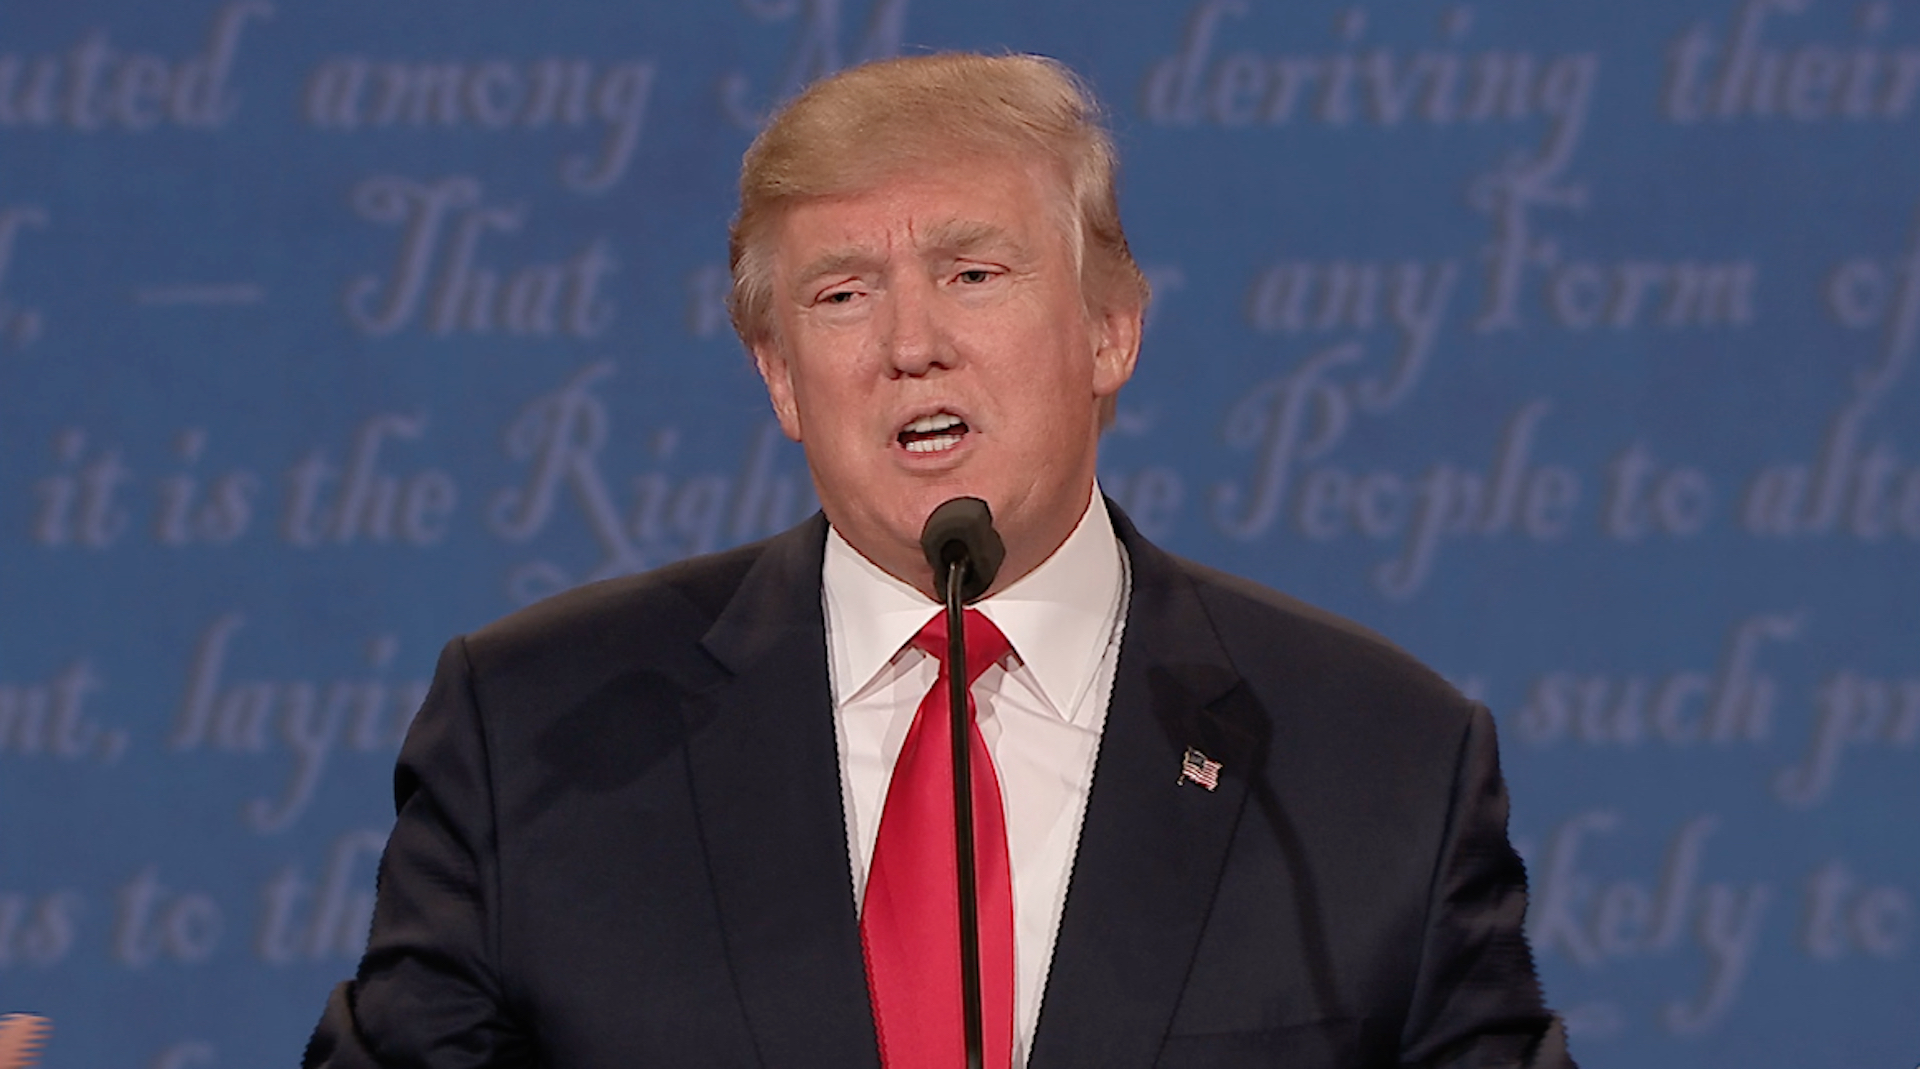 At third debate, Trump won't commit to accepting election results if he loses